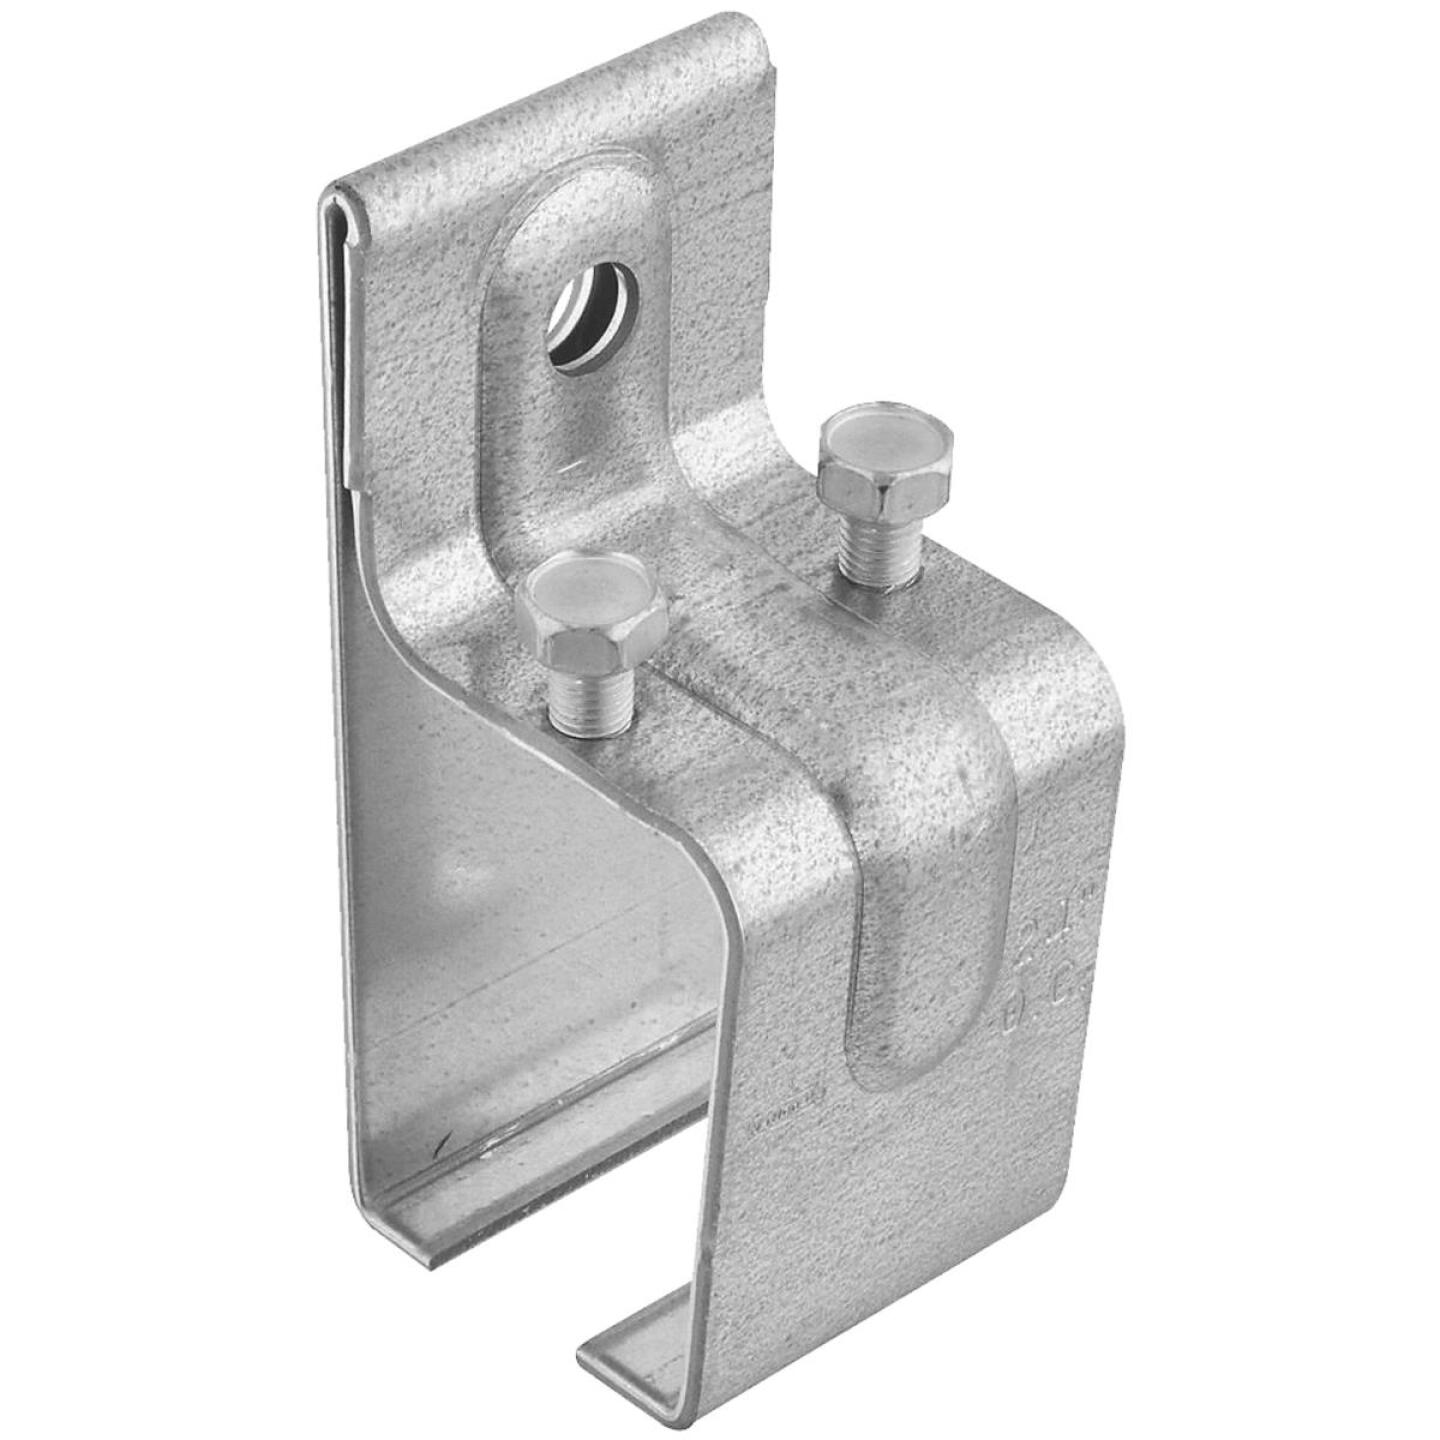 National Galvanized Single Splice Box Rail Barn Door Bracket Image 1